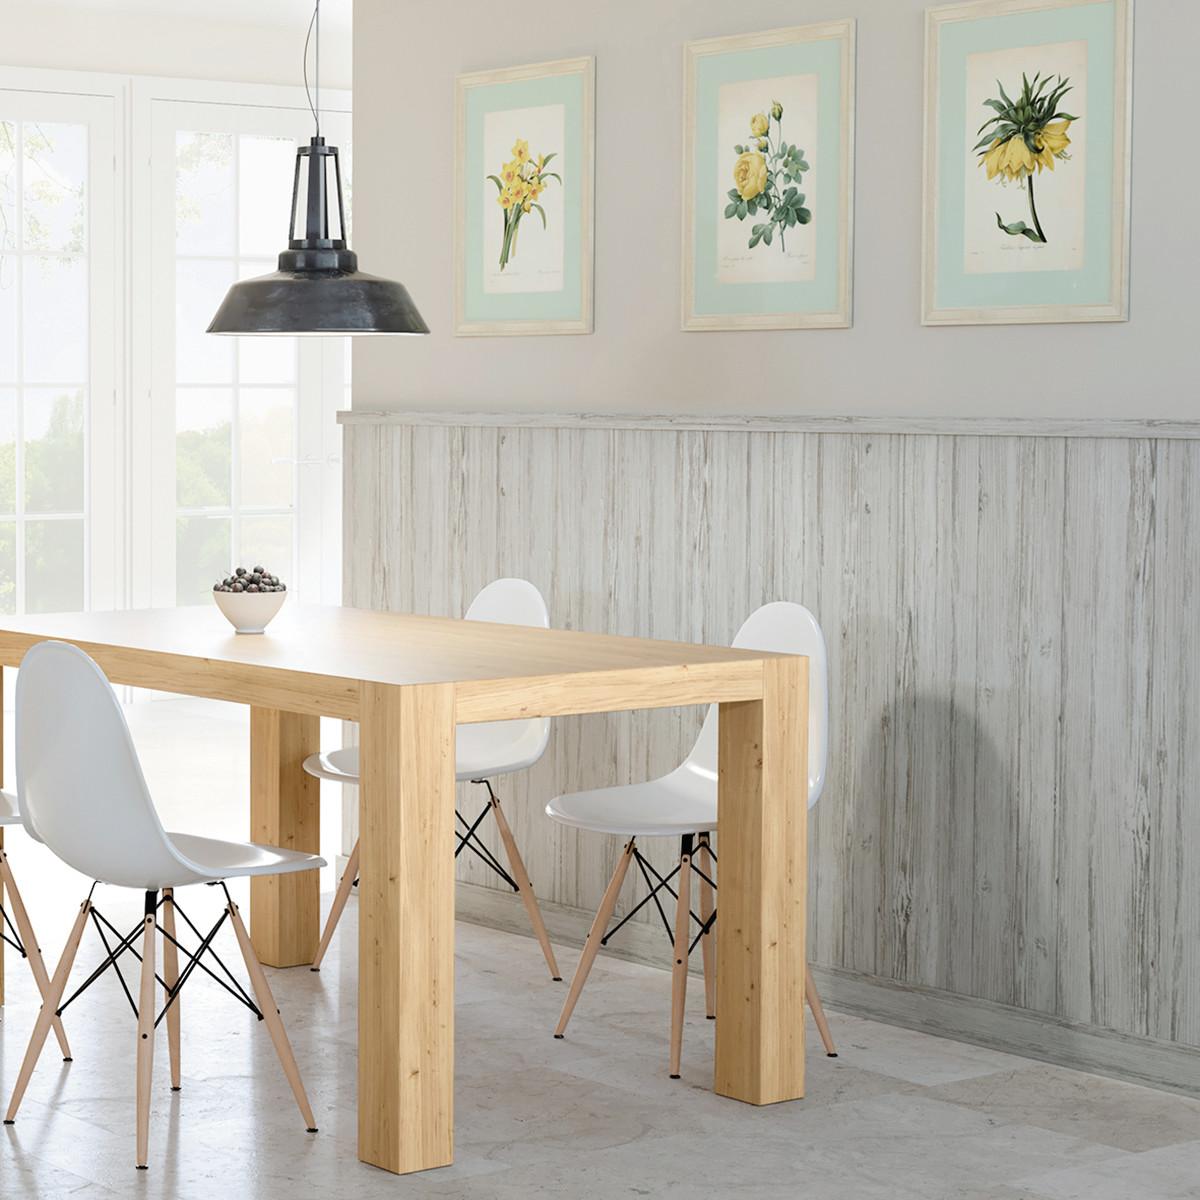 Decorazione veranda garden for Perline legno ikea